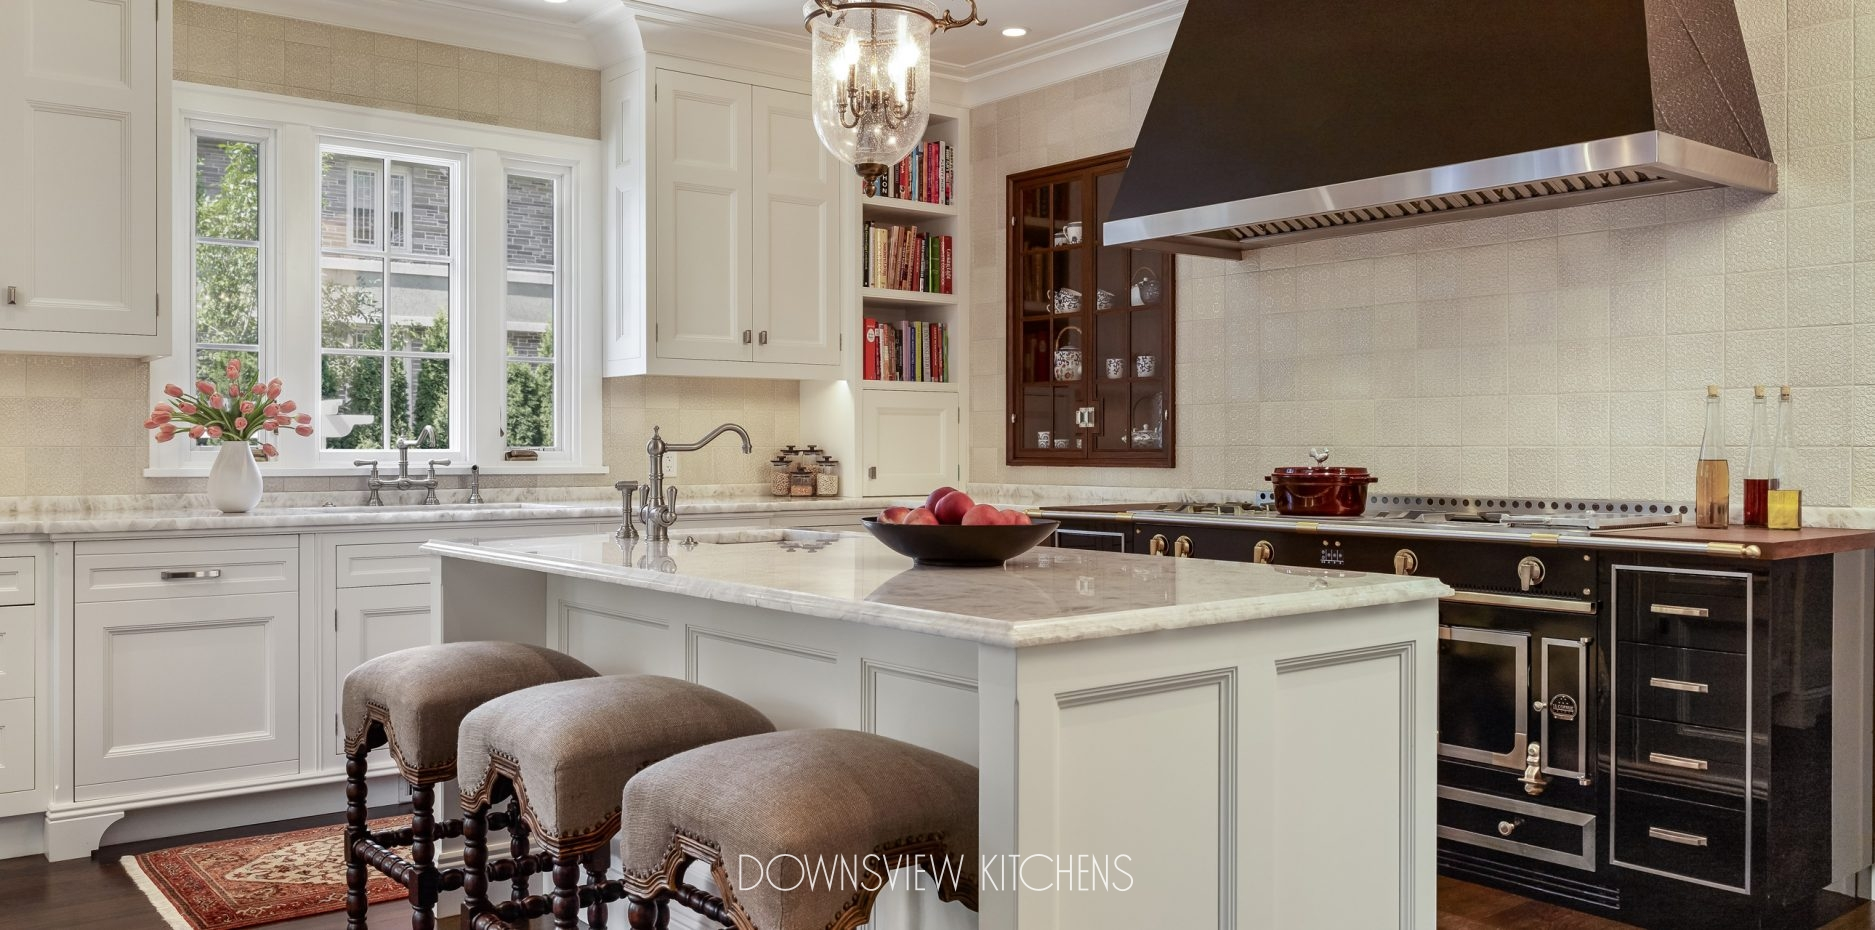 Crafted Refinement Downsview Kitchens And Fine Custom